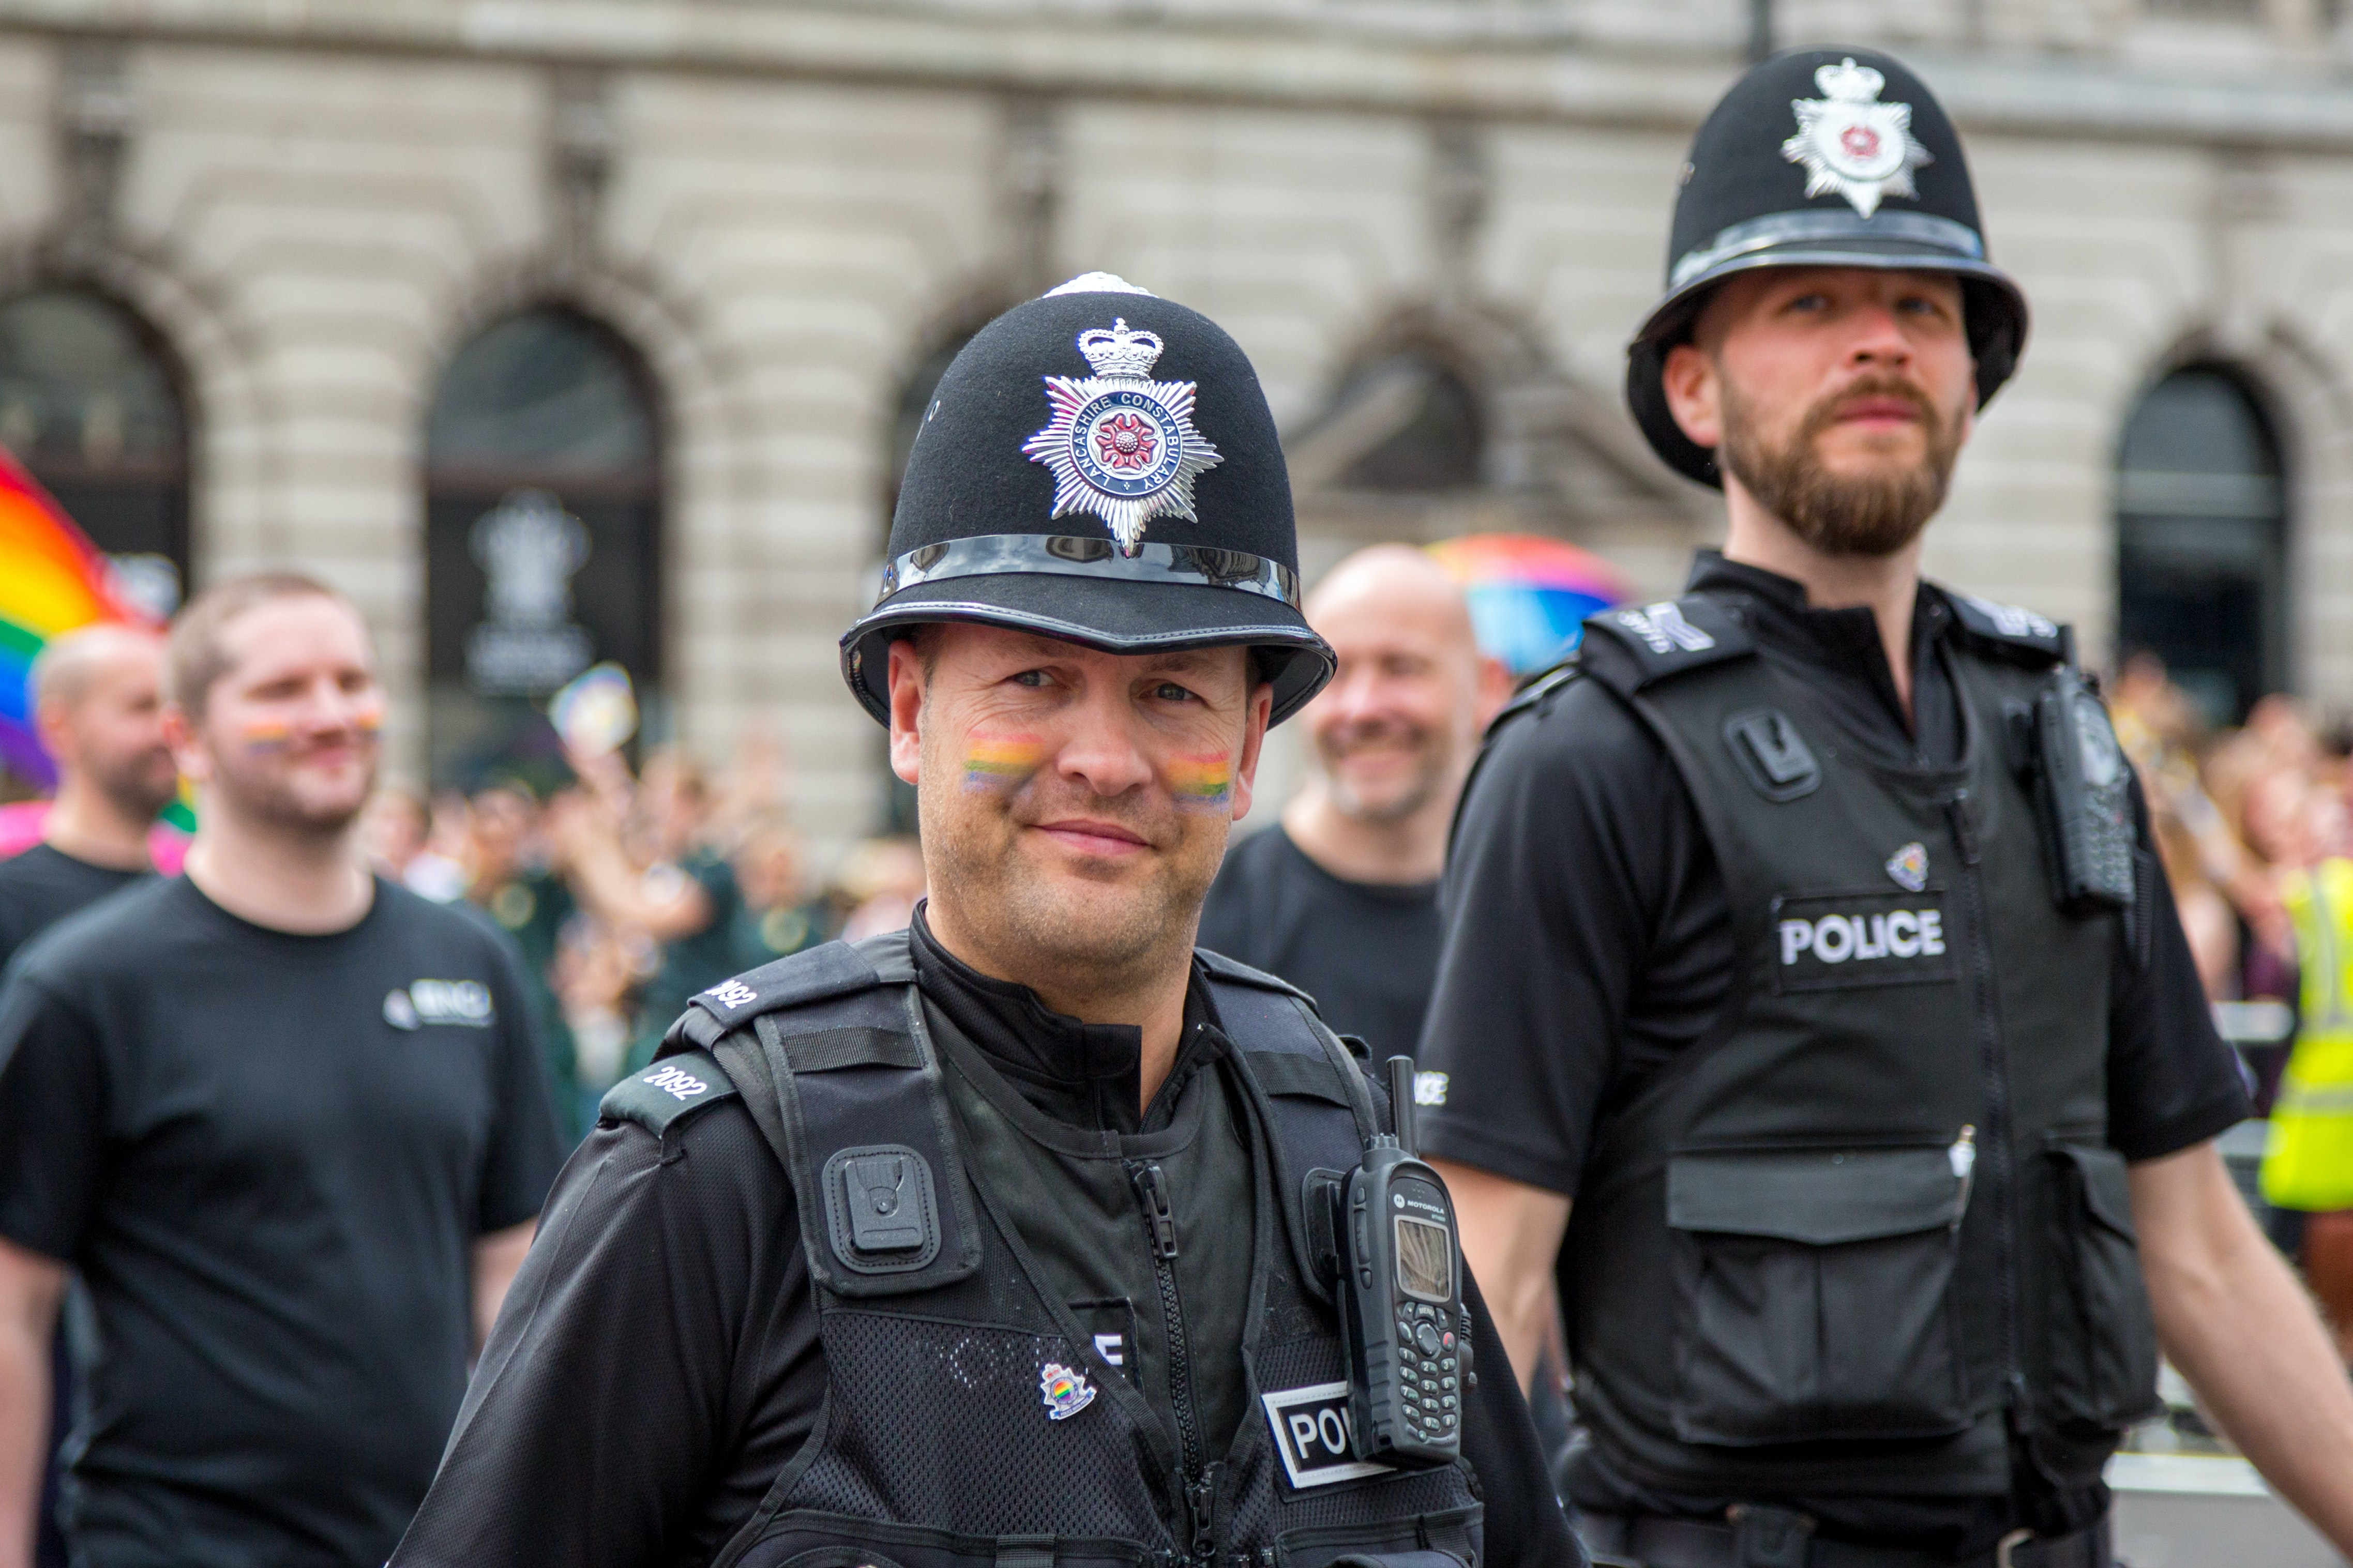 two police people look on during a pride march